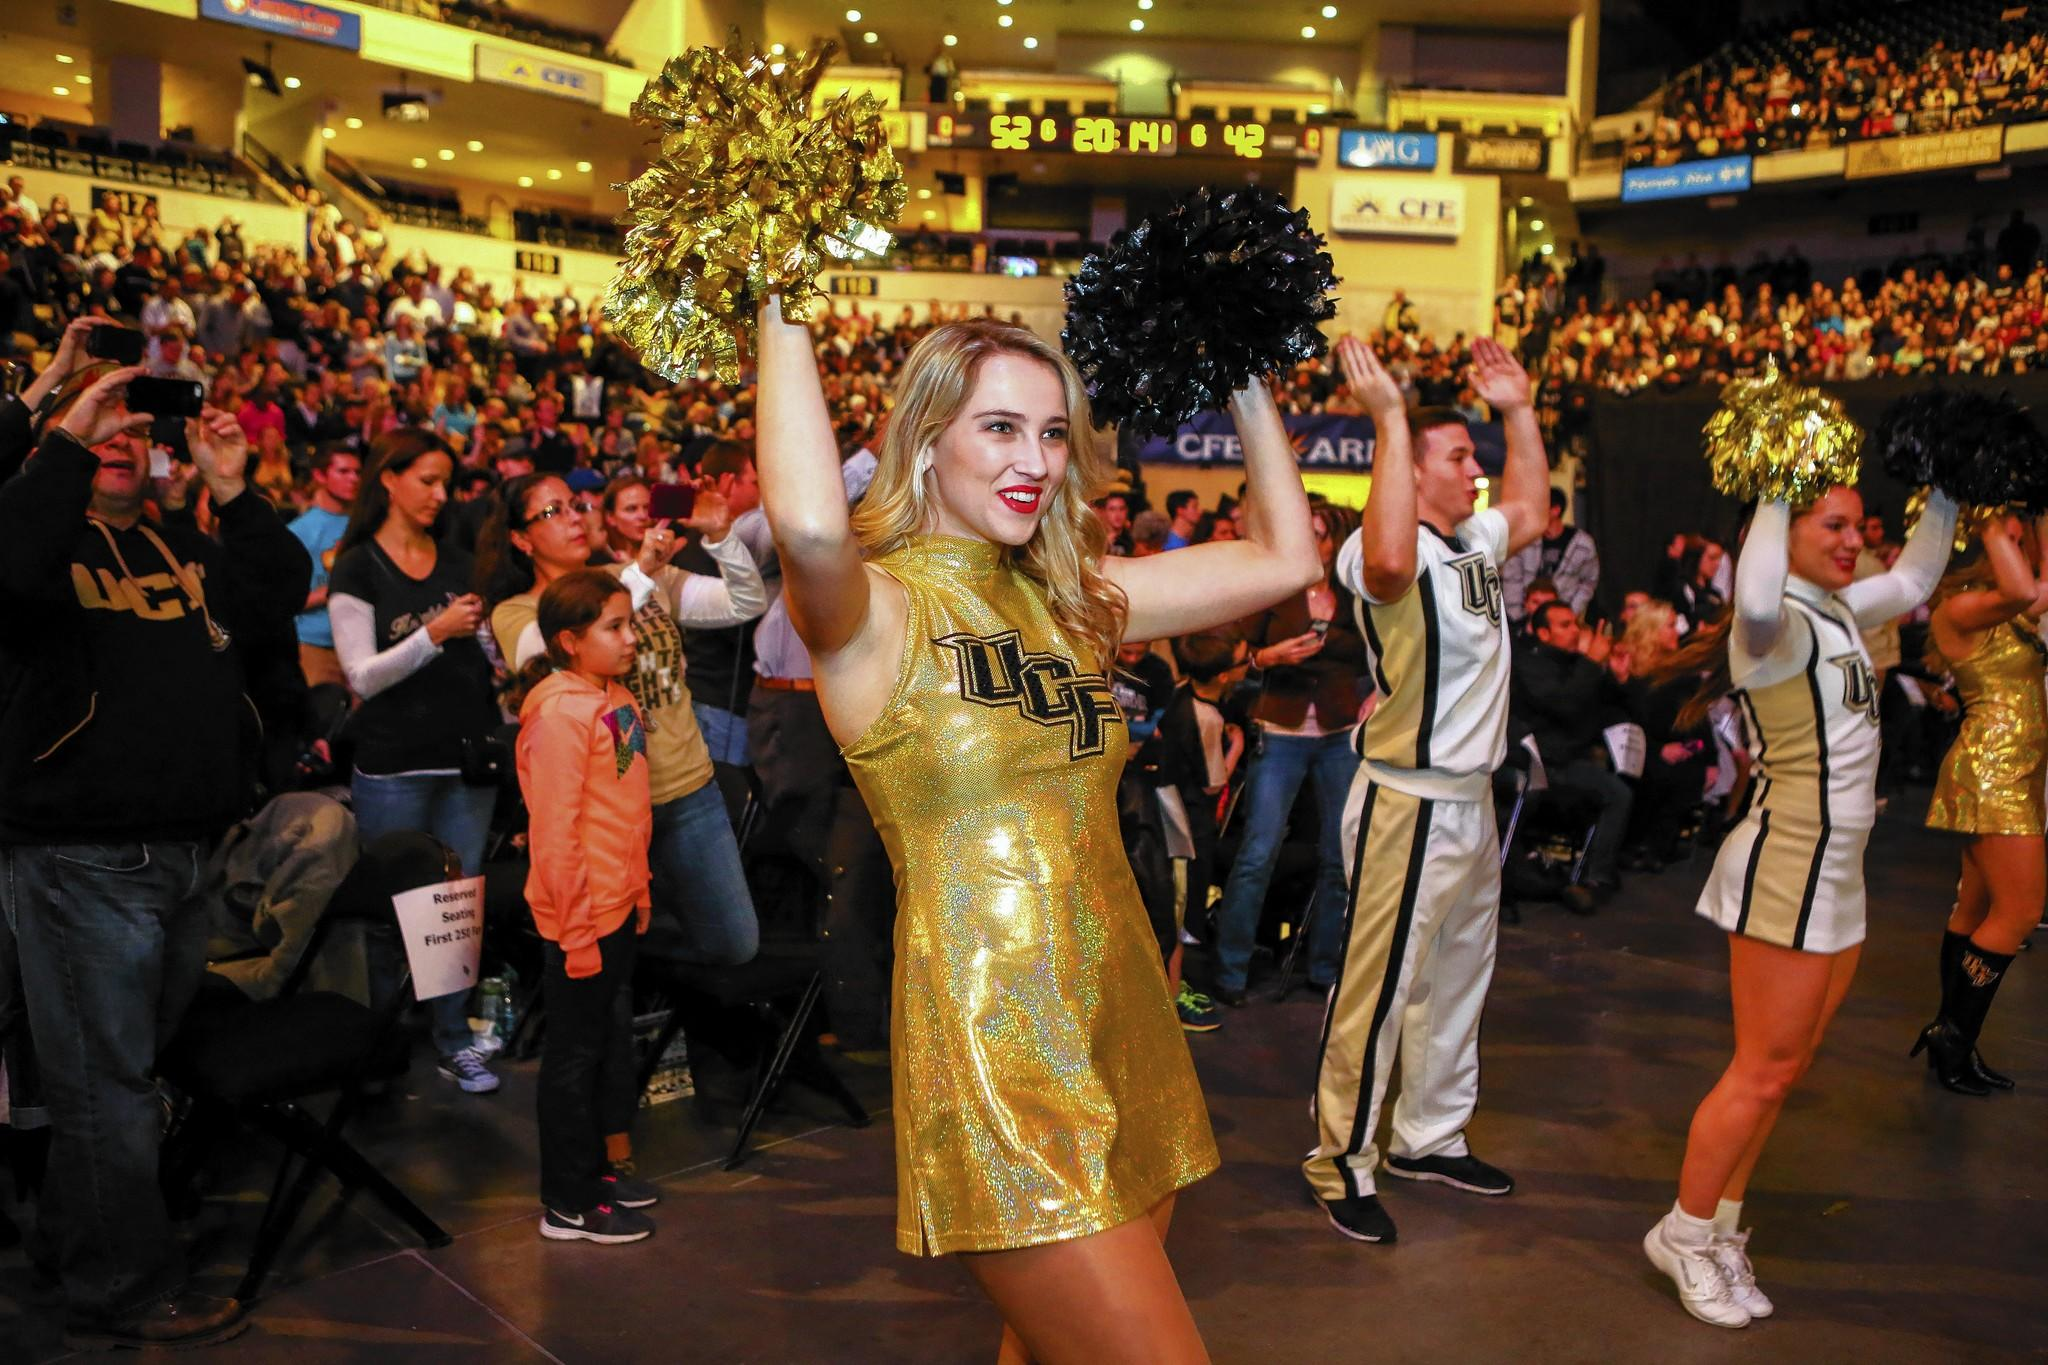 UCF dancers and cheerleaders perform as fans and alumni pack the CFE arena to celebrate the Knights BCS Fiesta Bowl victory over Baylor in Orlando on Wednesday, January 08, 2014.